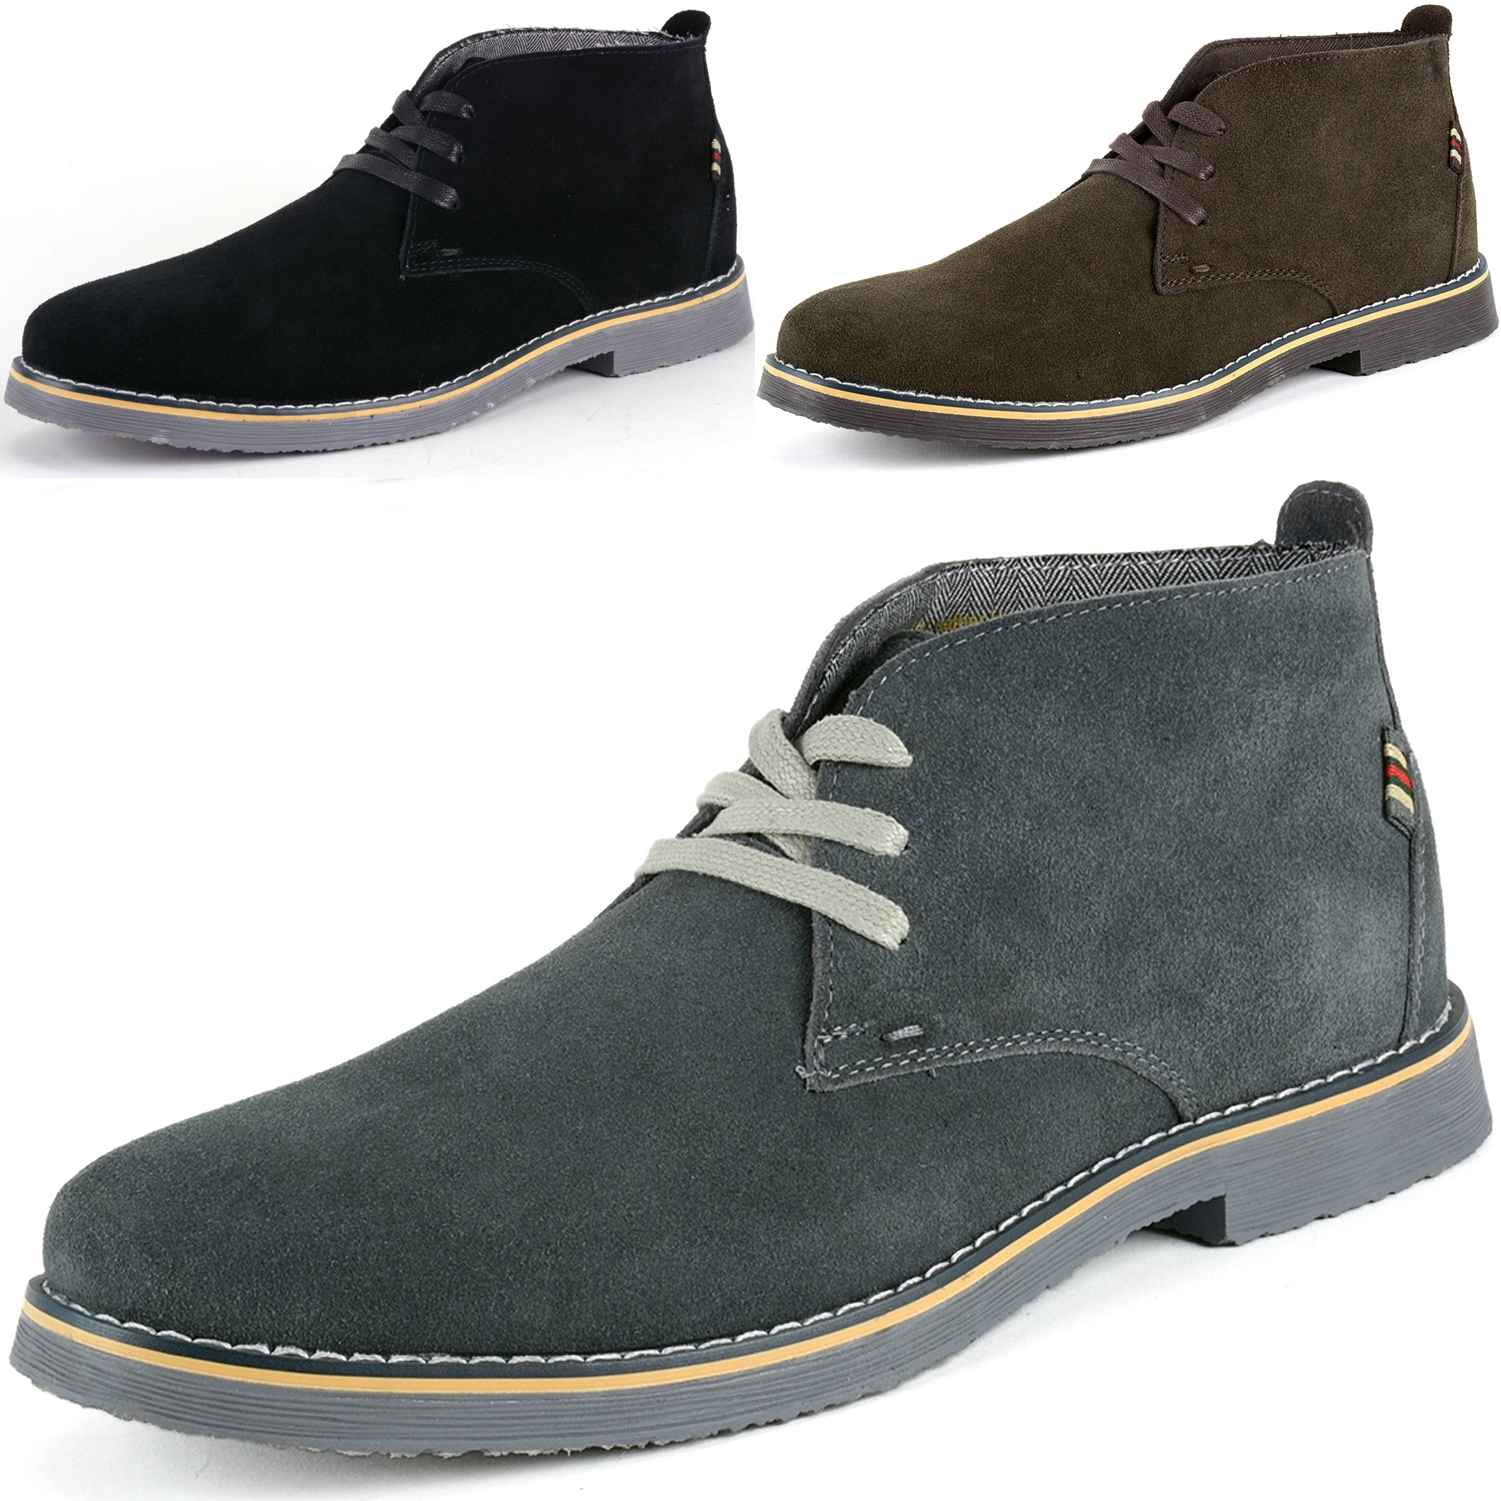 Desert Boots For Men M7PCS424